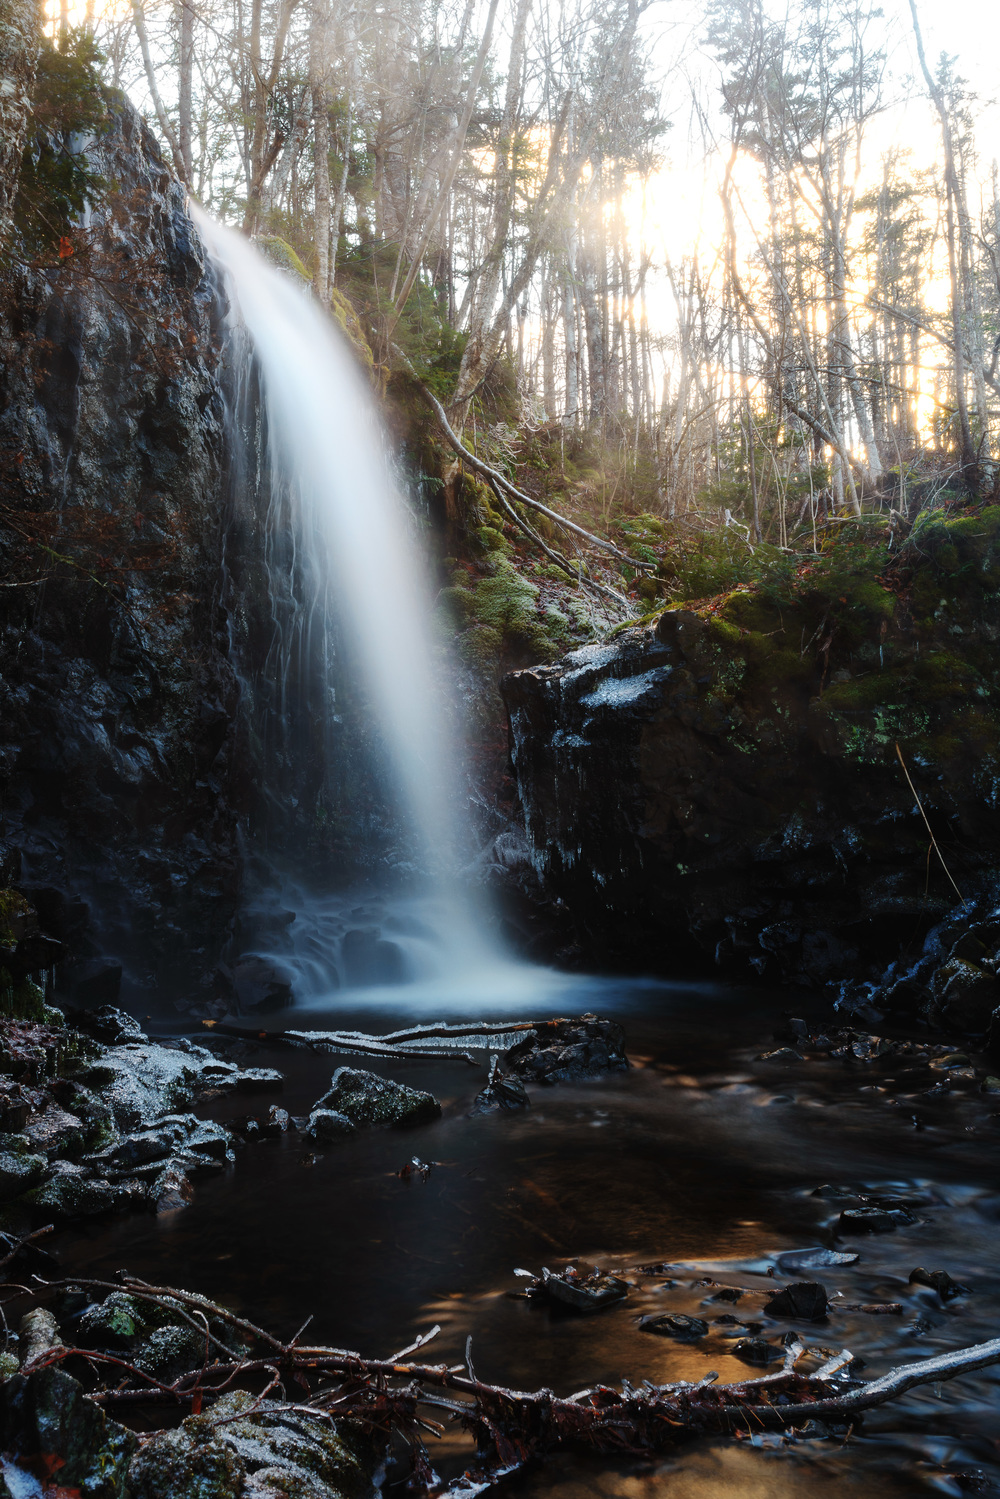 Epic waterfalls near Baxter's Harbour in Nova Scotia -  I'm going to print this one quite big.